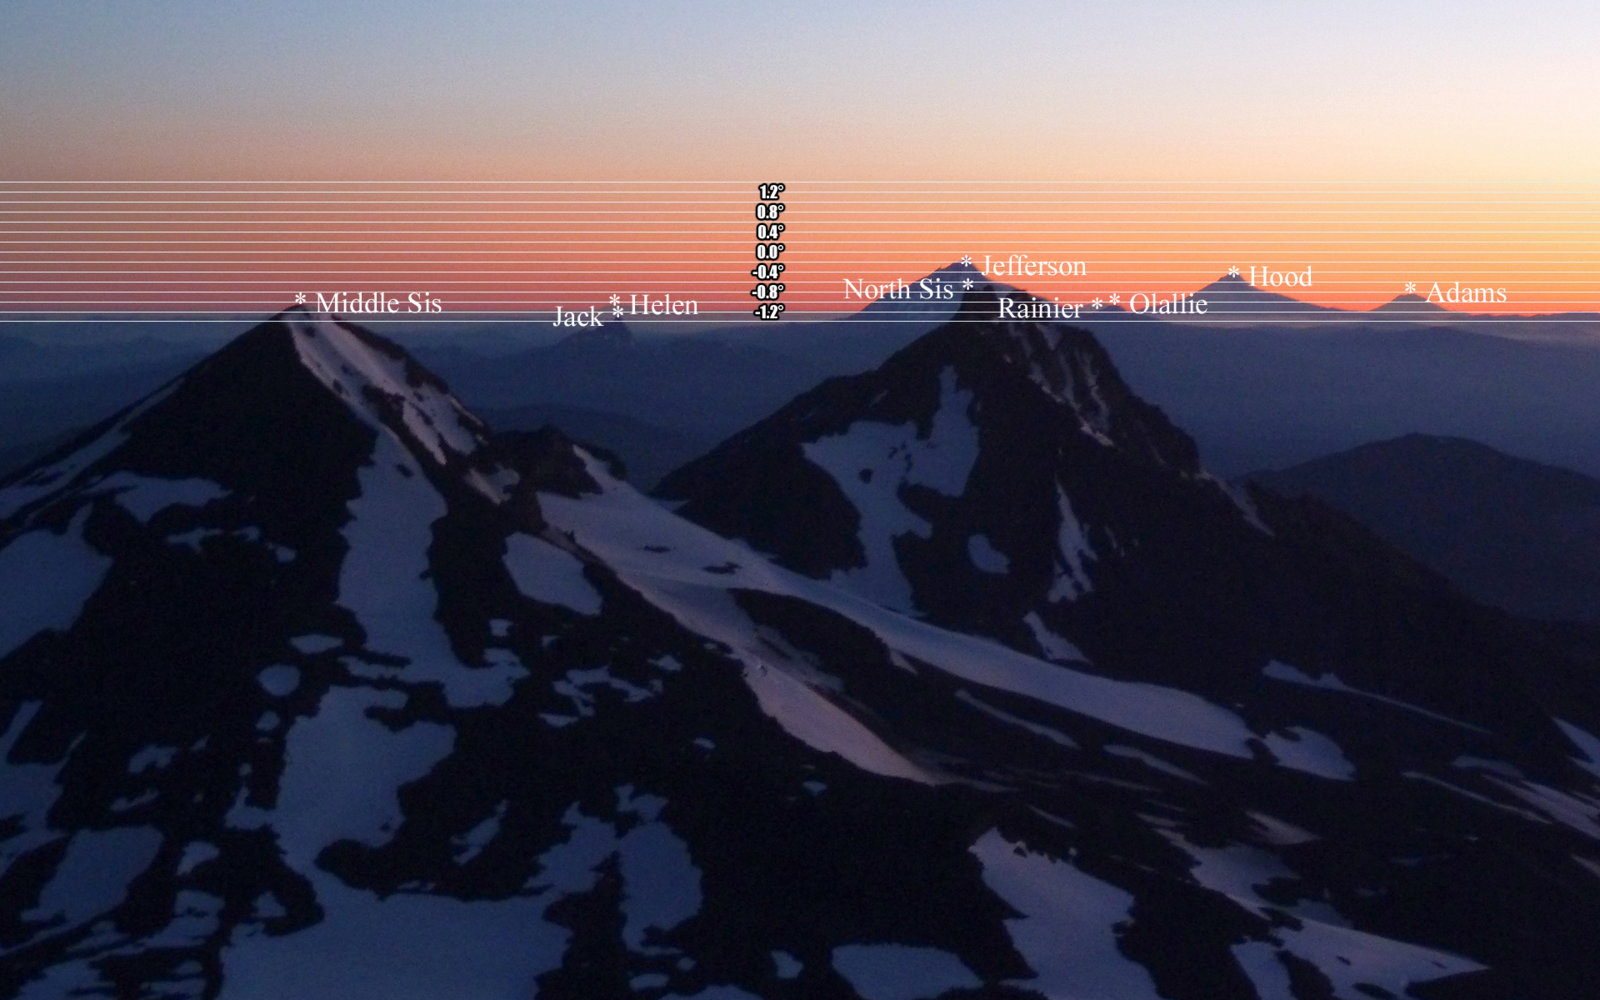 south sister sphere with lines.jpg